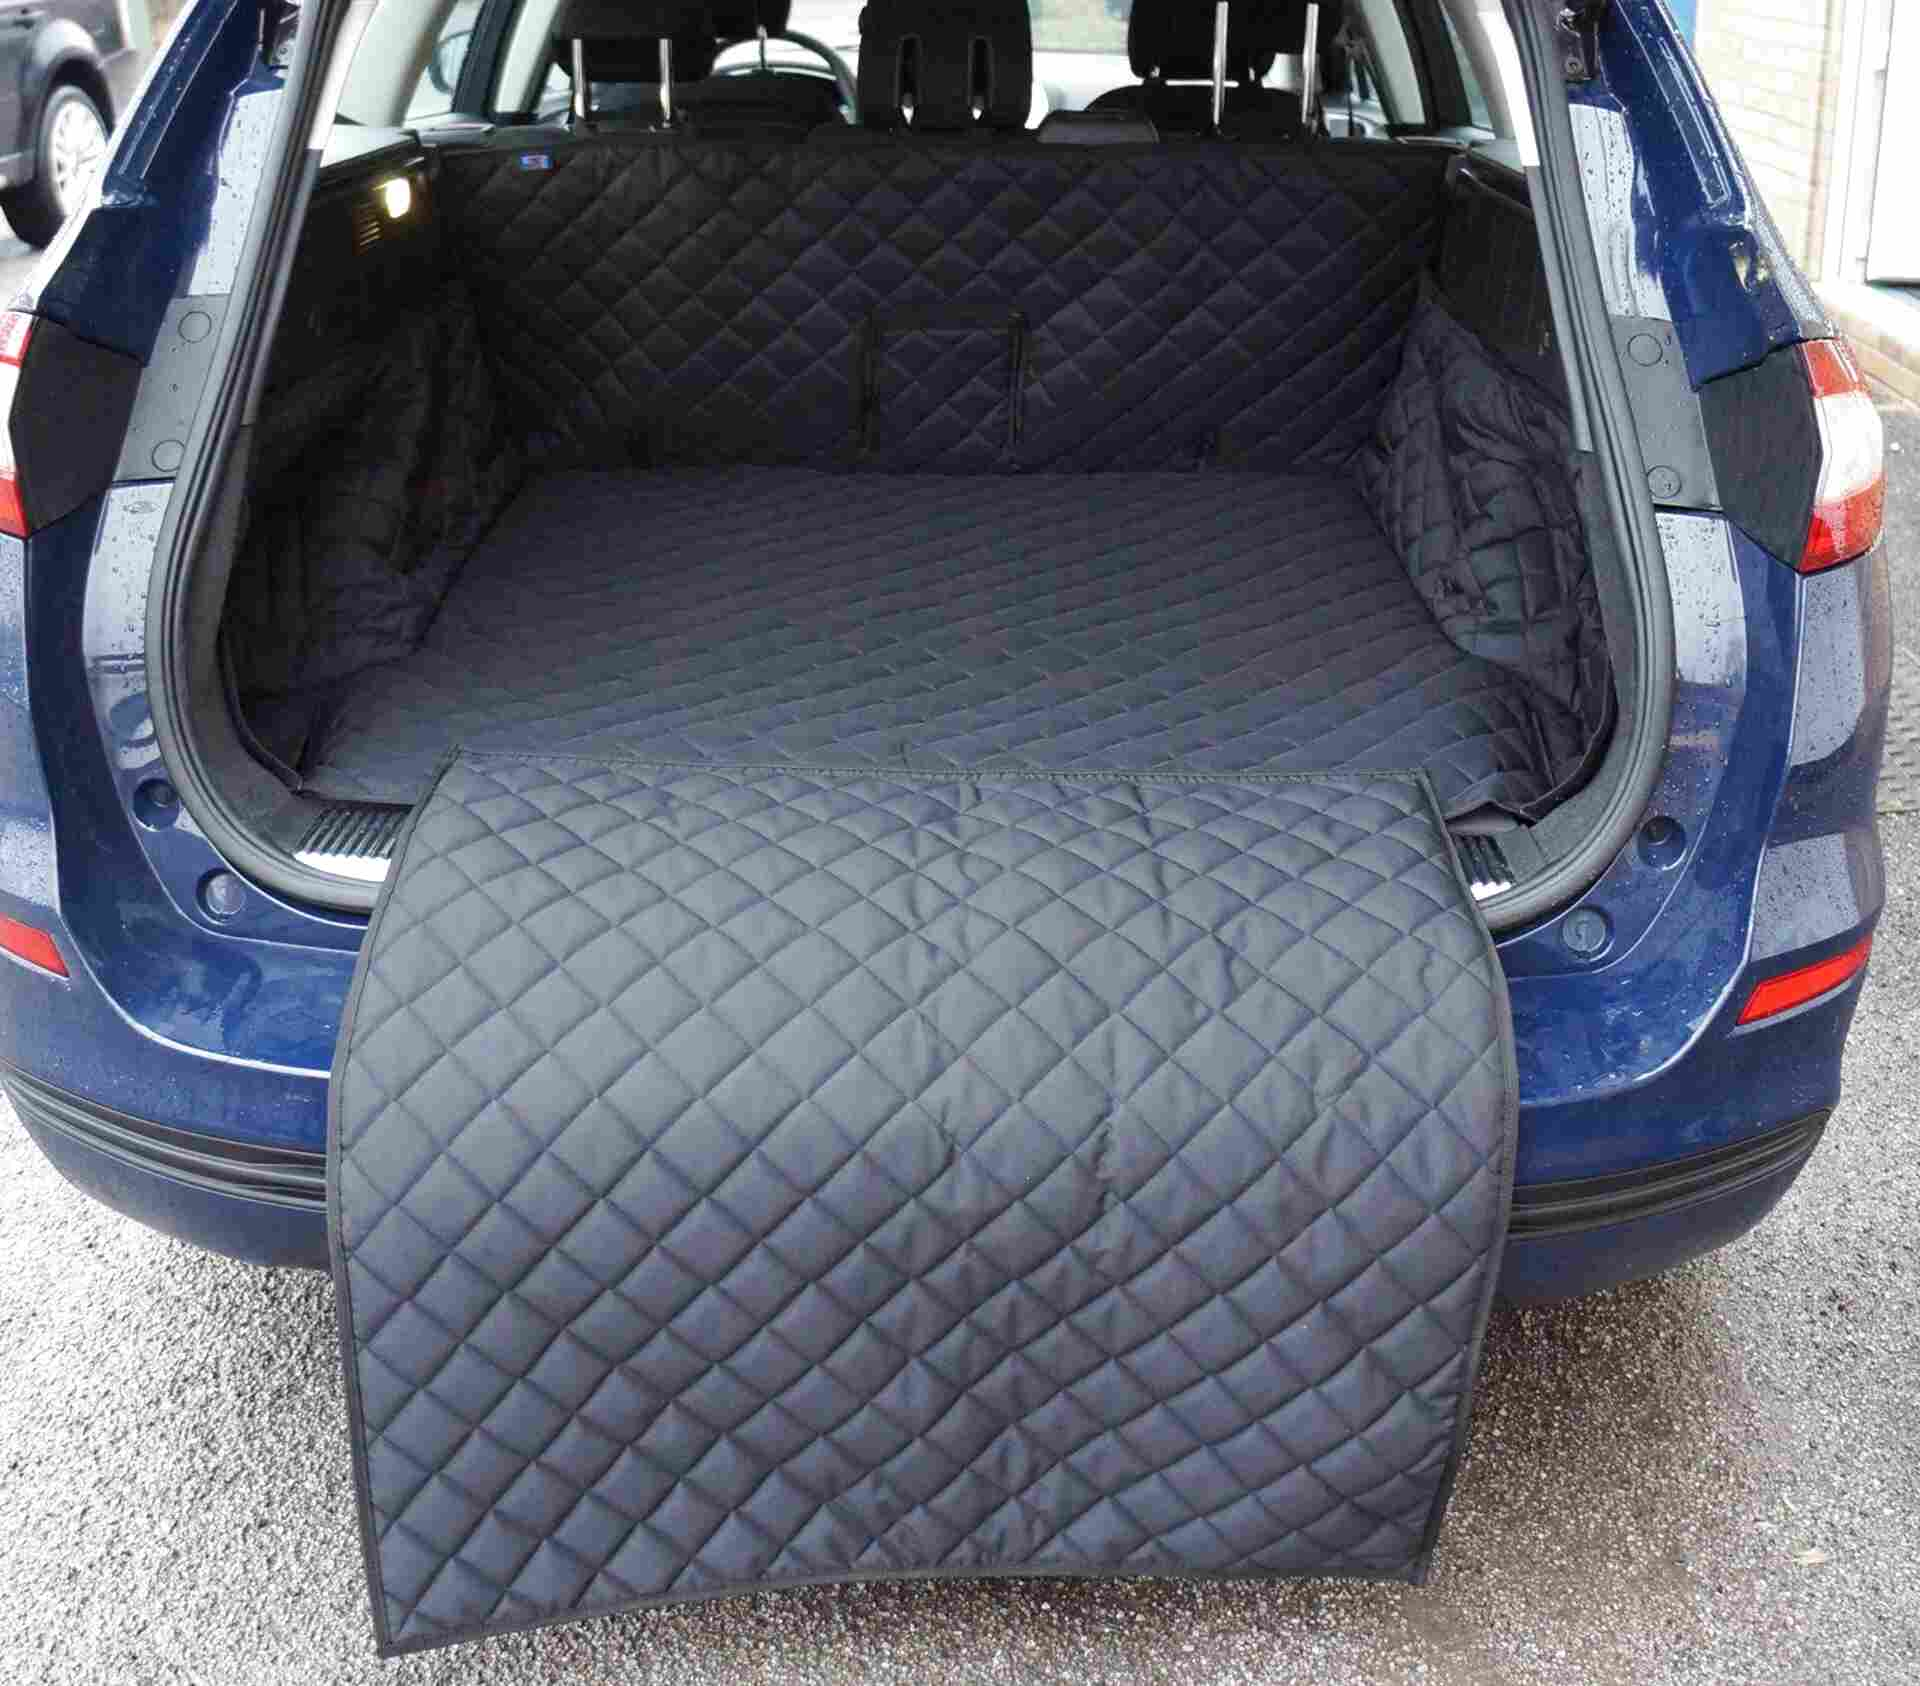 Quilt Thick Boot Cover Guard Liner Protector For Ford Mondeo Hatchback 2014 On